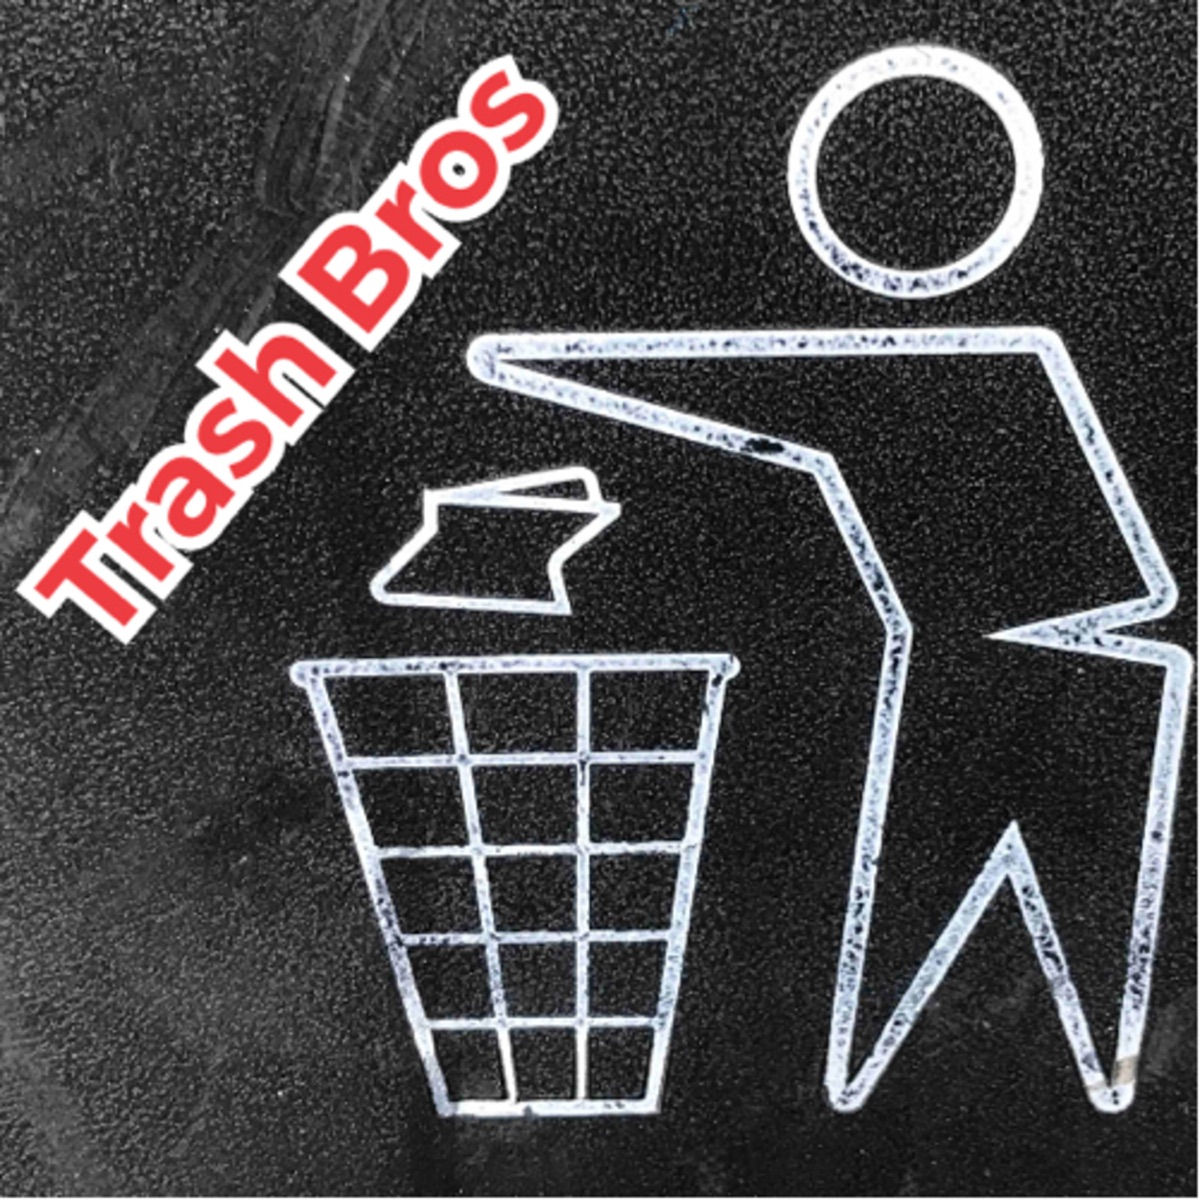 The Trash Bros